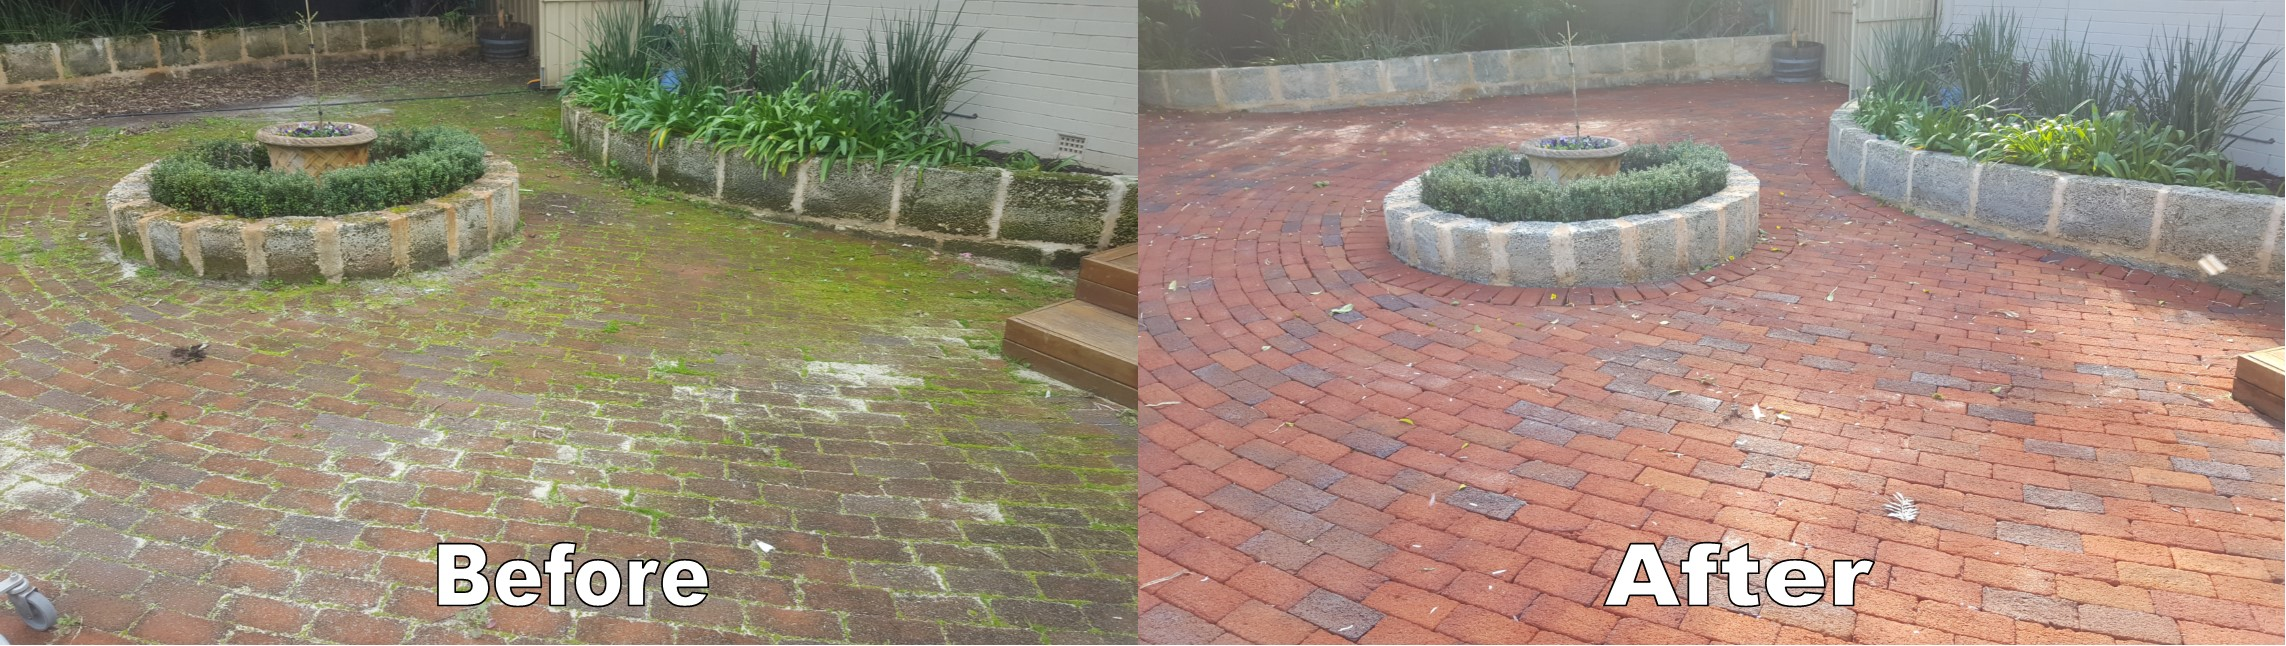 Clay Paver High Pressure Cleaning Perth